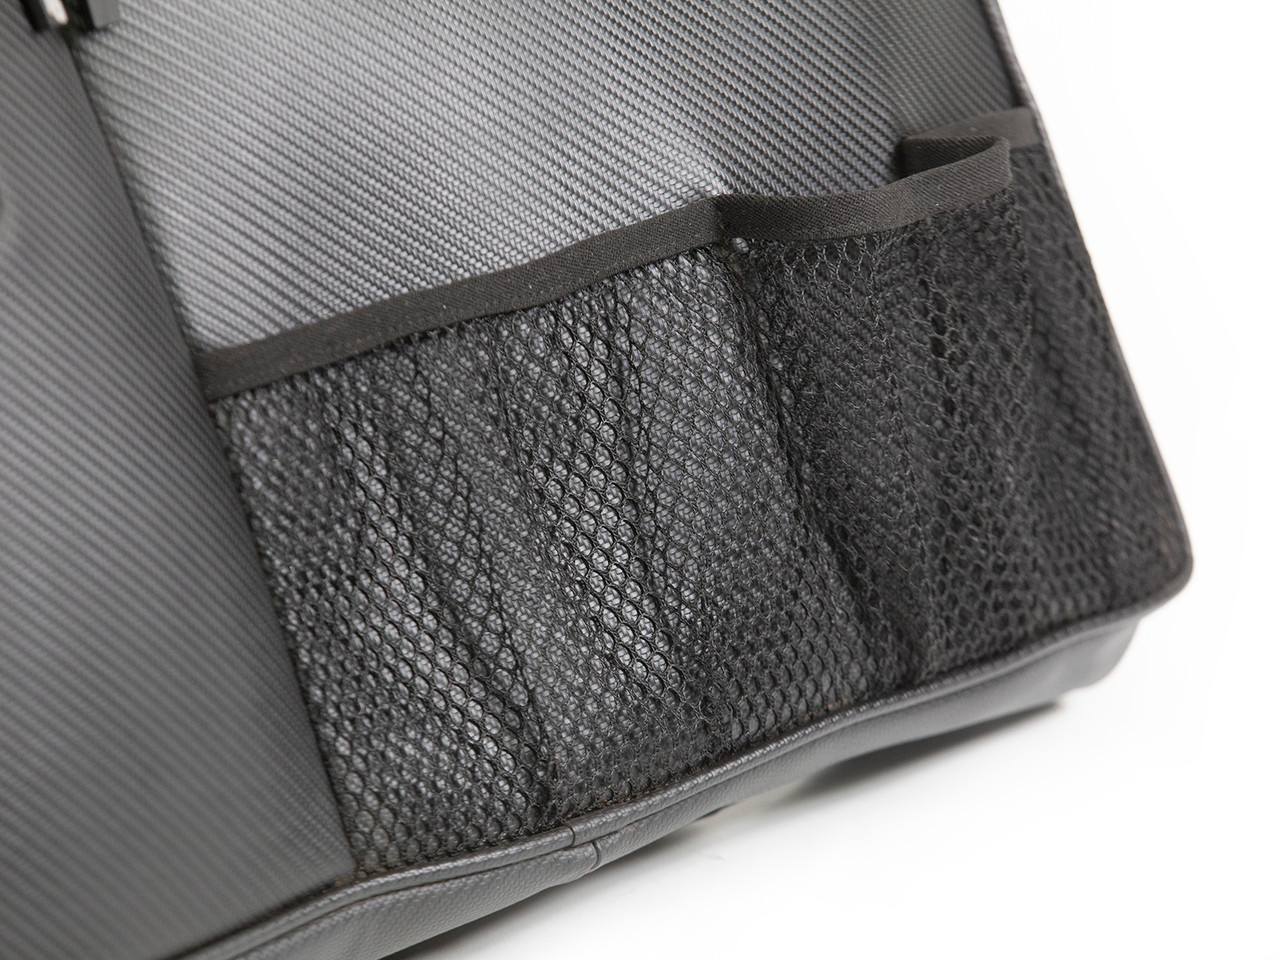 Mesh pockets to hold accessories